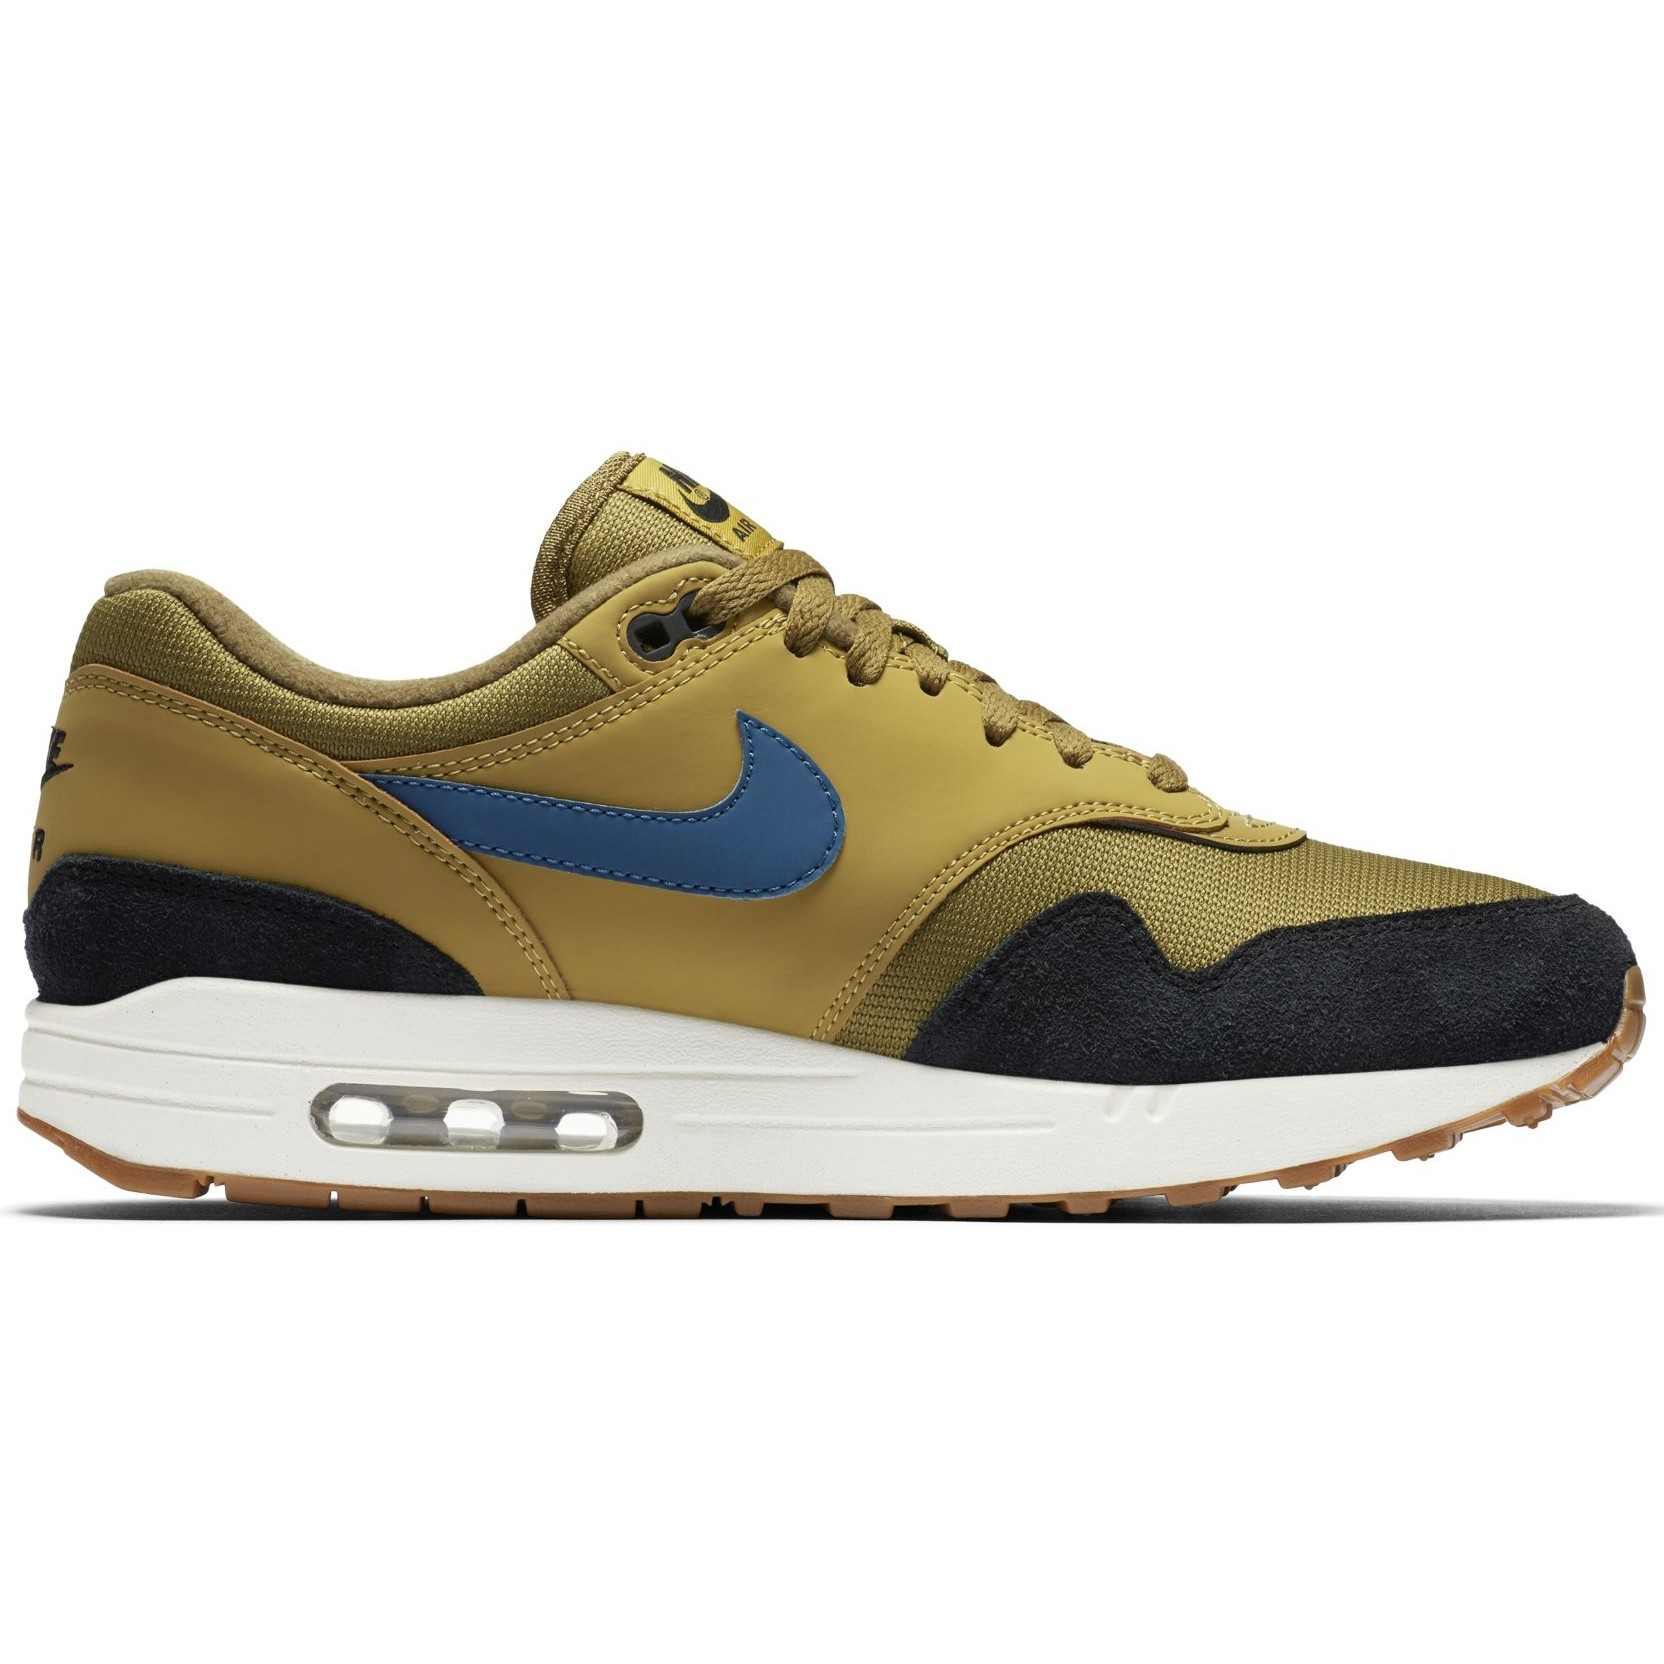 Nike Air Max 1 Golden Moss Blue Force - Nike Air Max batai